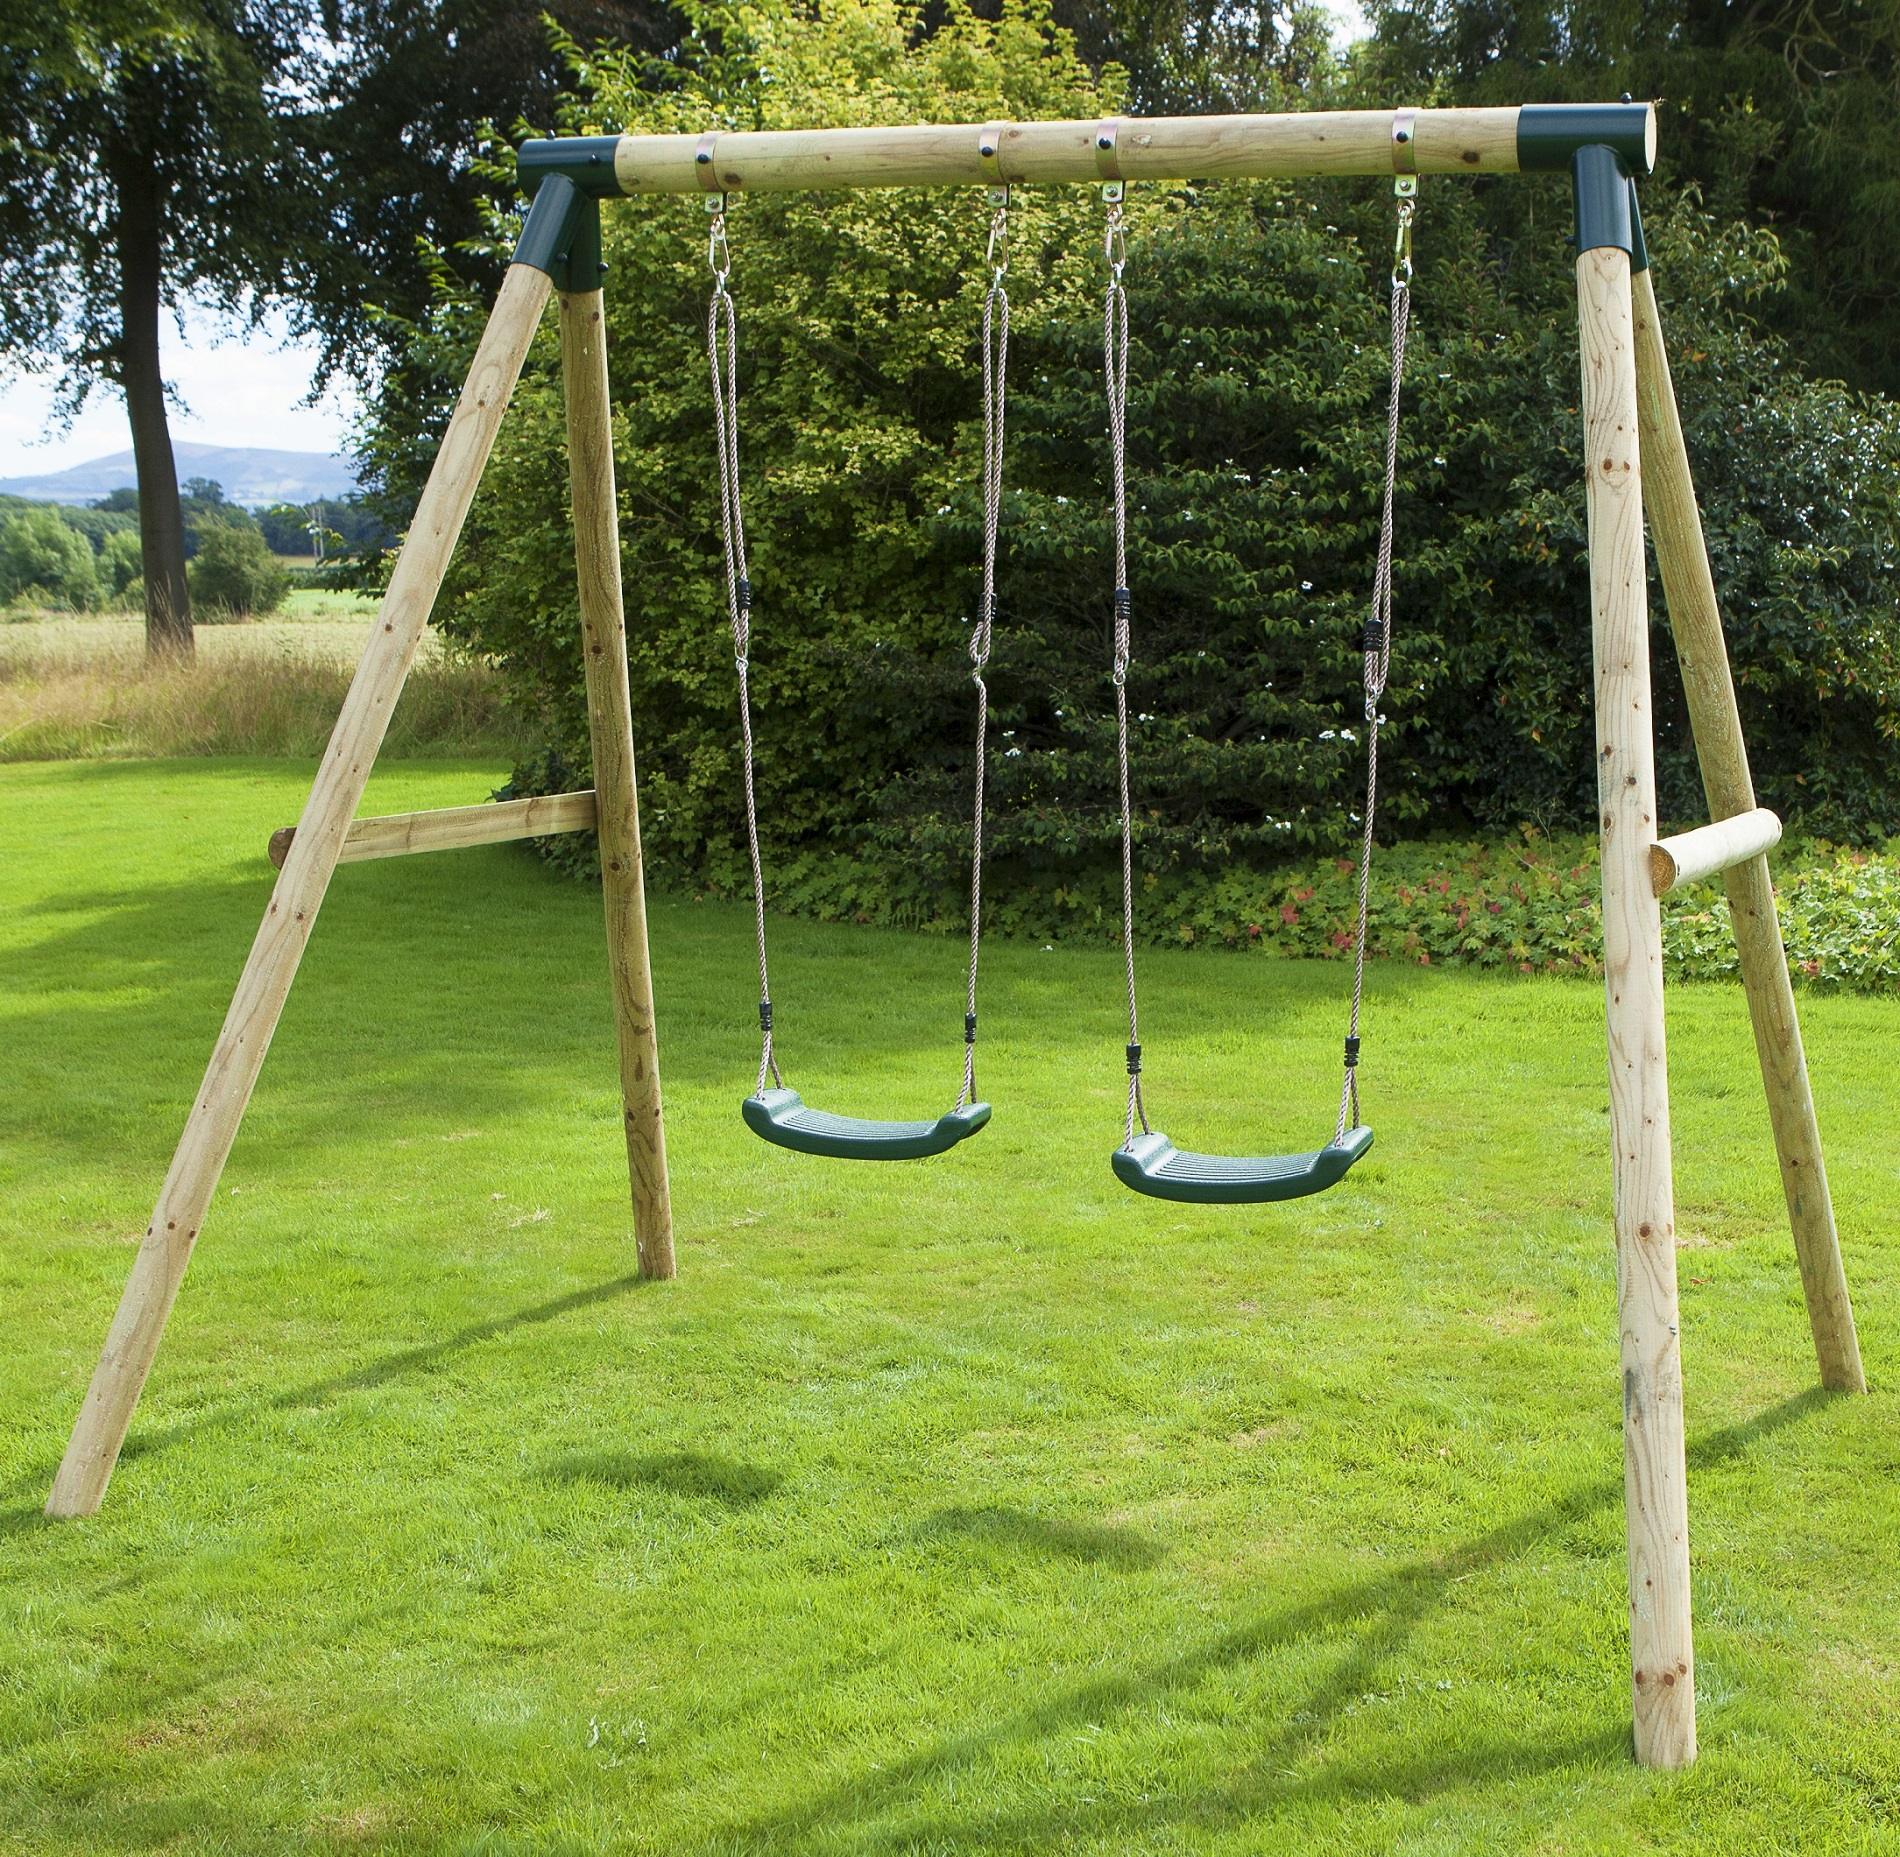 Rebo Venus Wooden Garden Swing Set - Double Swing | eBay